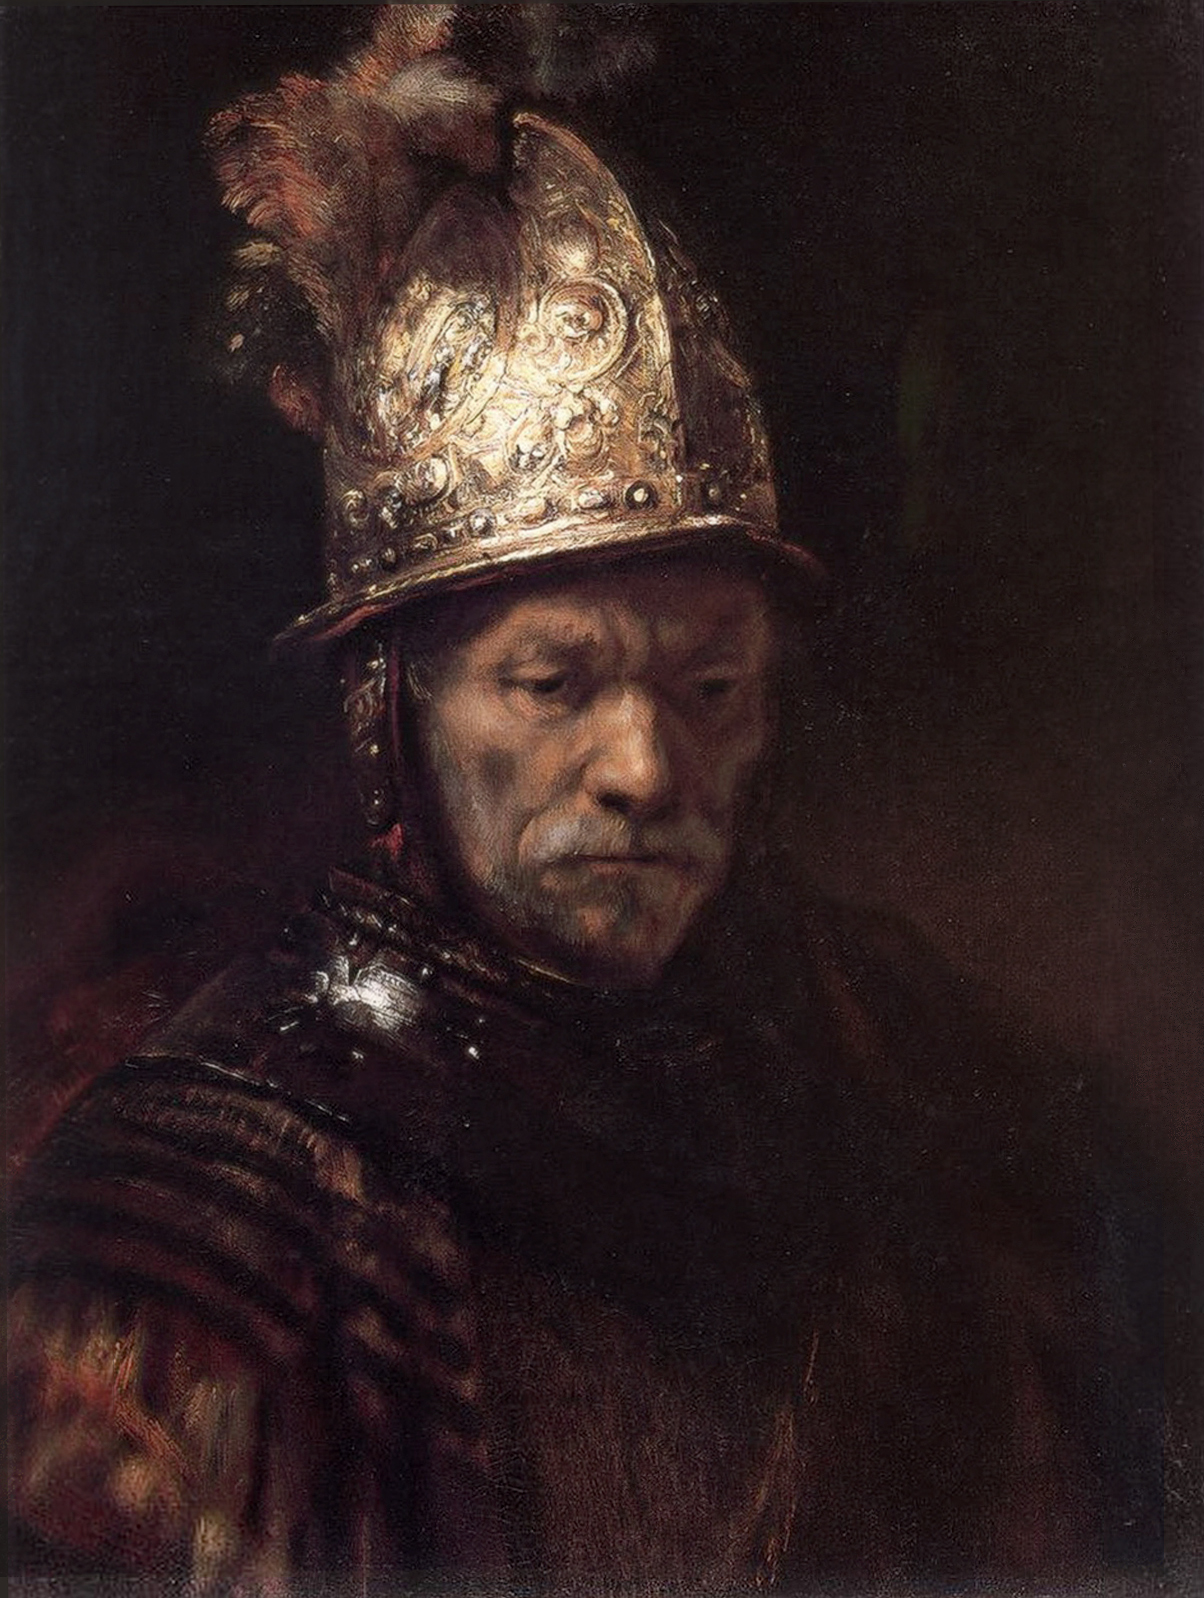 Rembrandt: The Man with the Golden Helmet